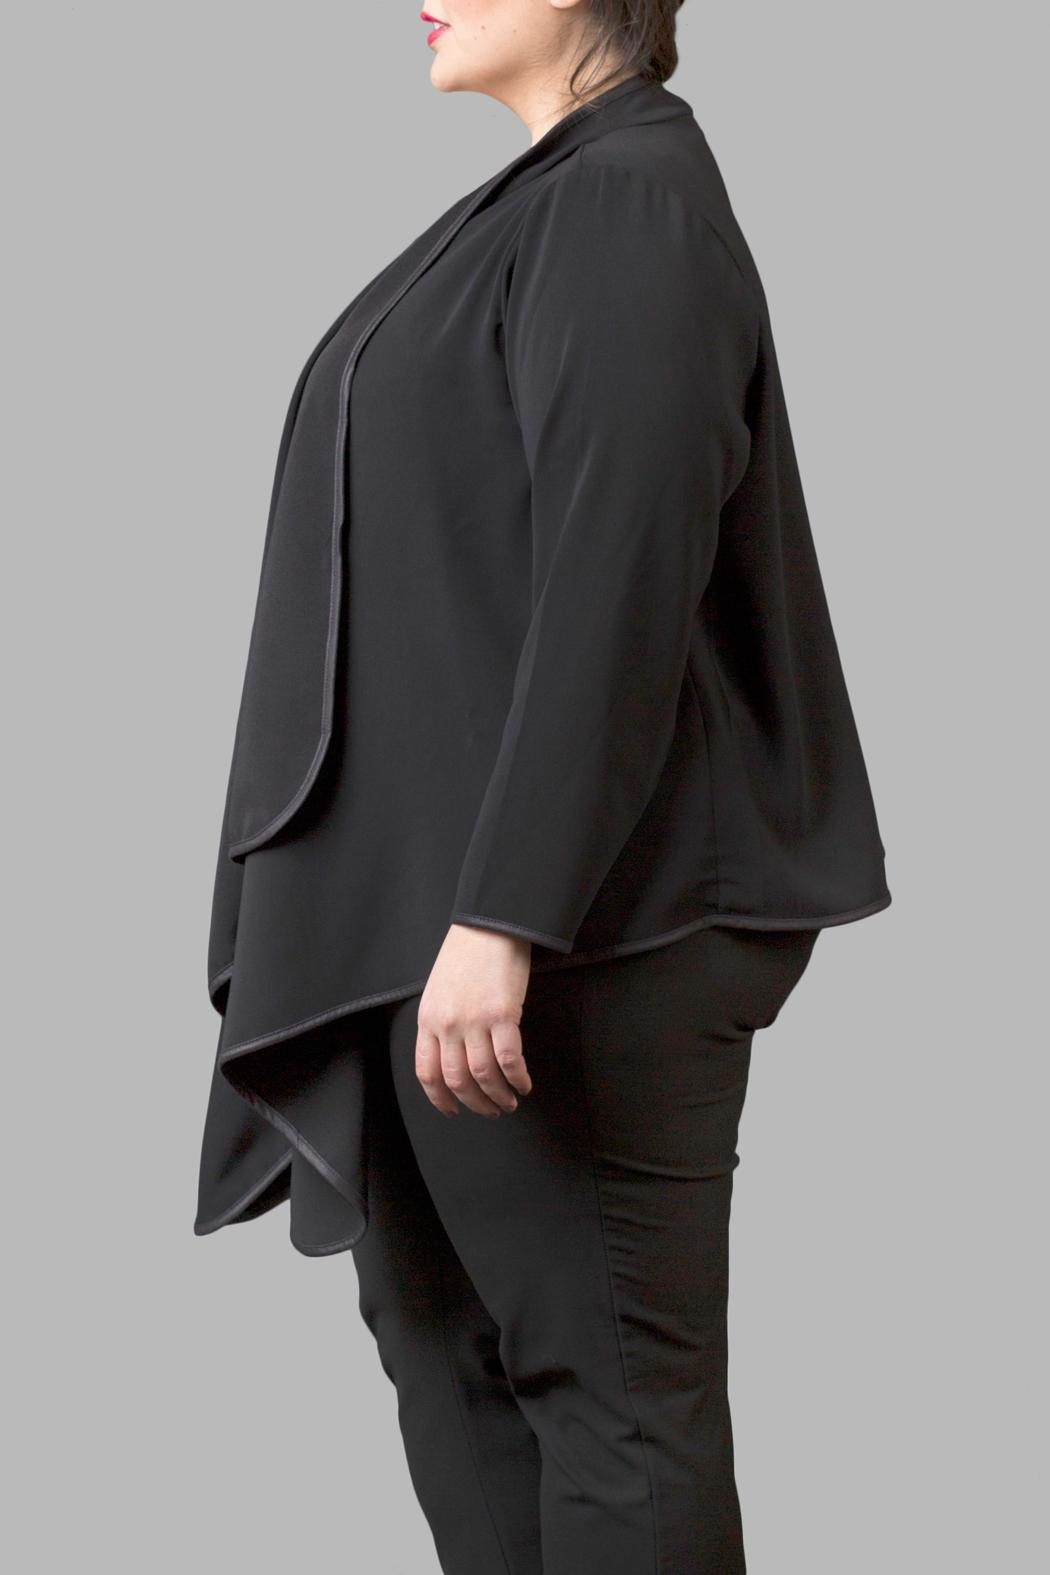 Love By Yona Draped Overpiece Black - Front Full Image